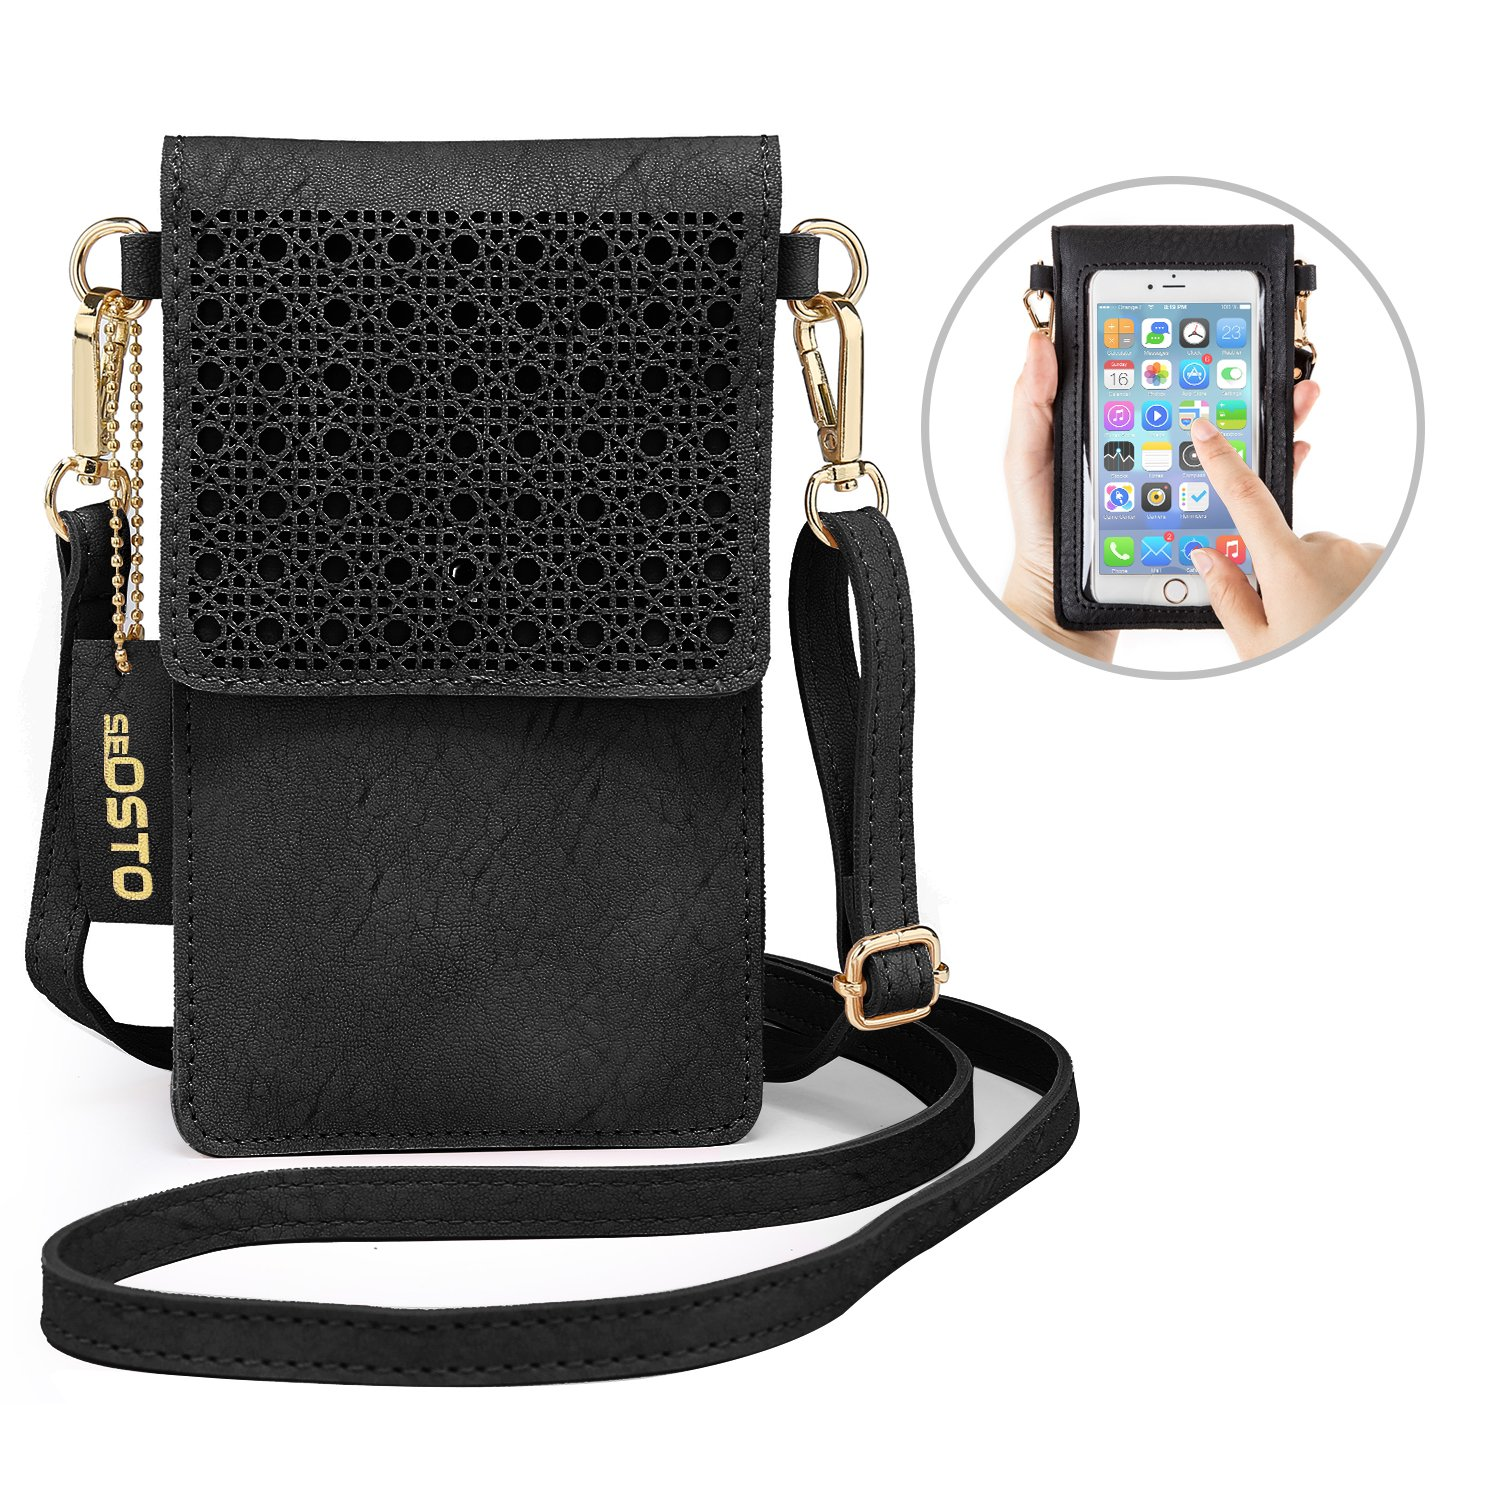 Details about seOSTO Small Crossbody Bag Cell Phone Purse Wallet with 2  Shoulder Strap Handbag 2cf78e5b4a69f